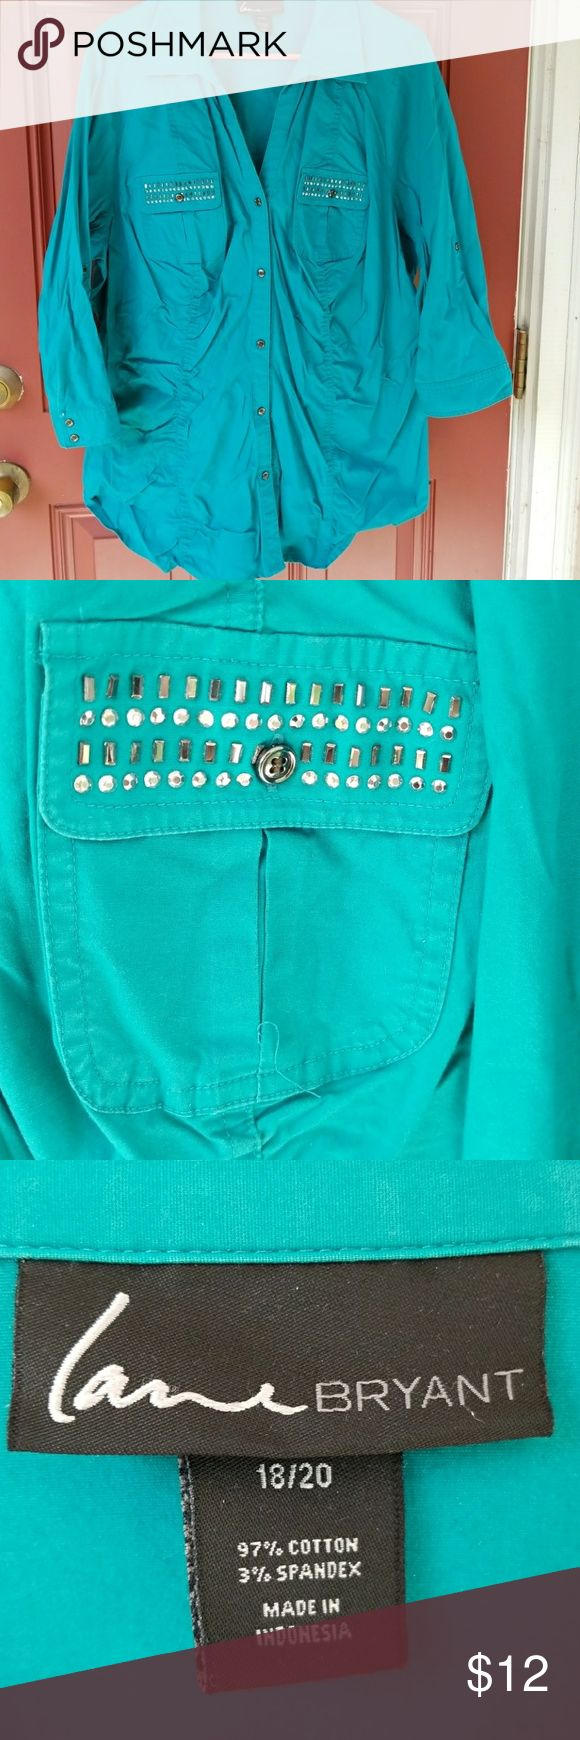 Teal shirt 3/4 sleeve teal button up shirt. Two front pockets with accents. Lane Bryant Tops Button Down Shirts